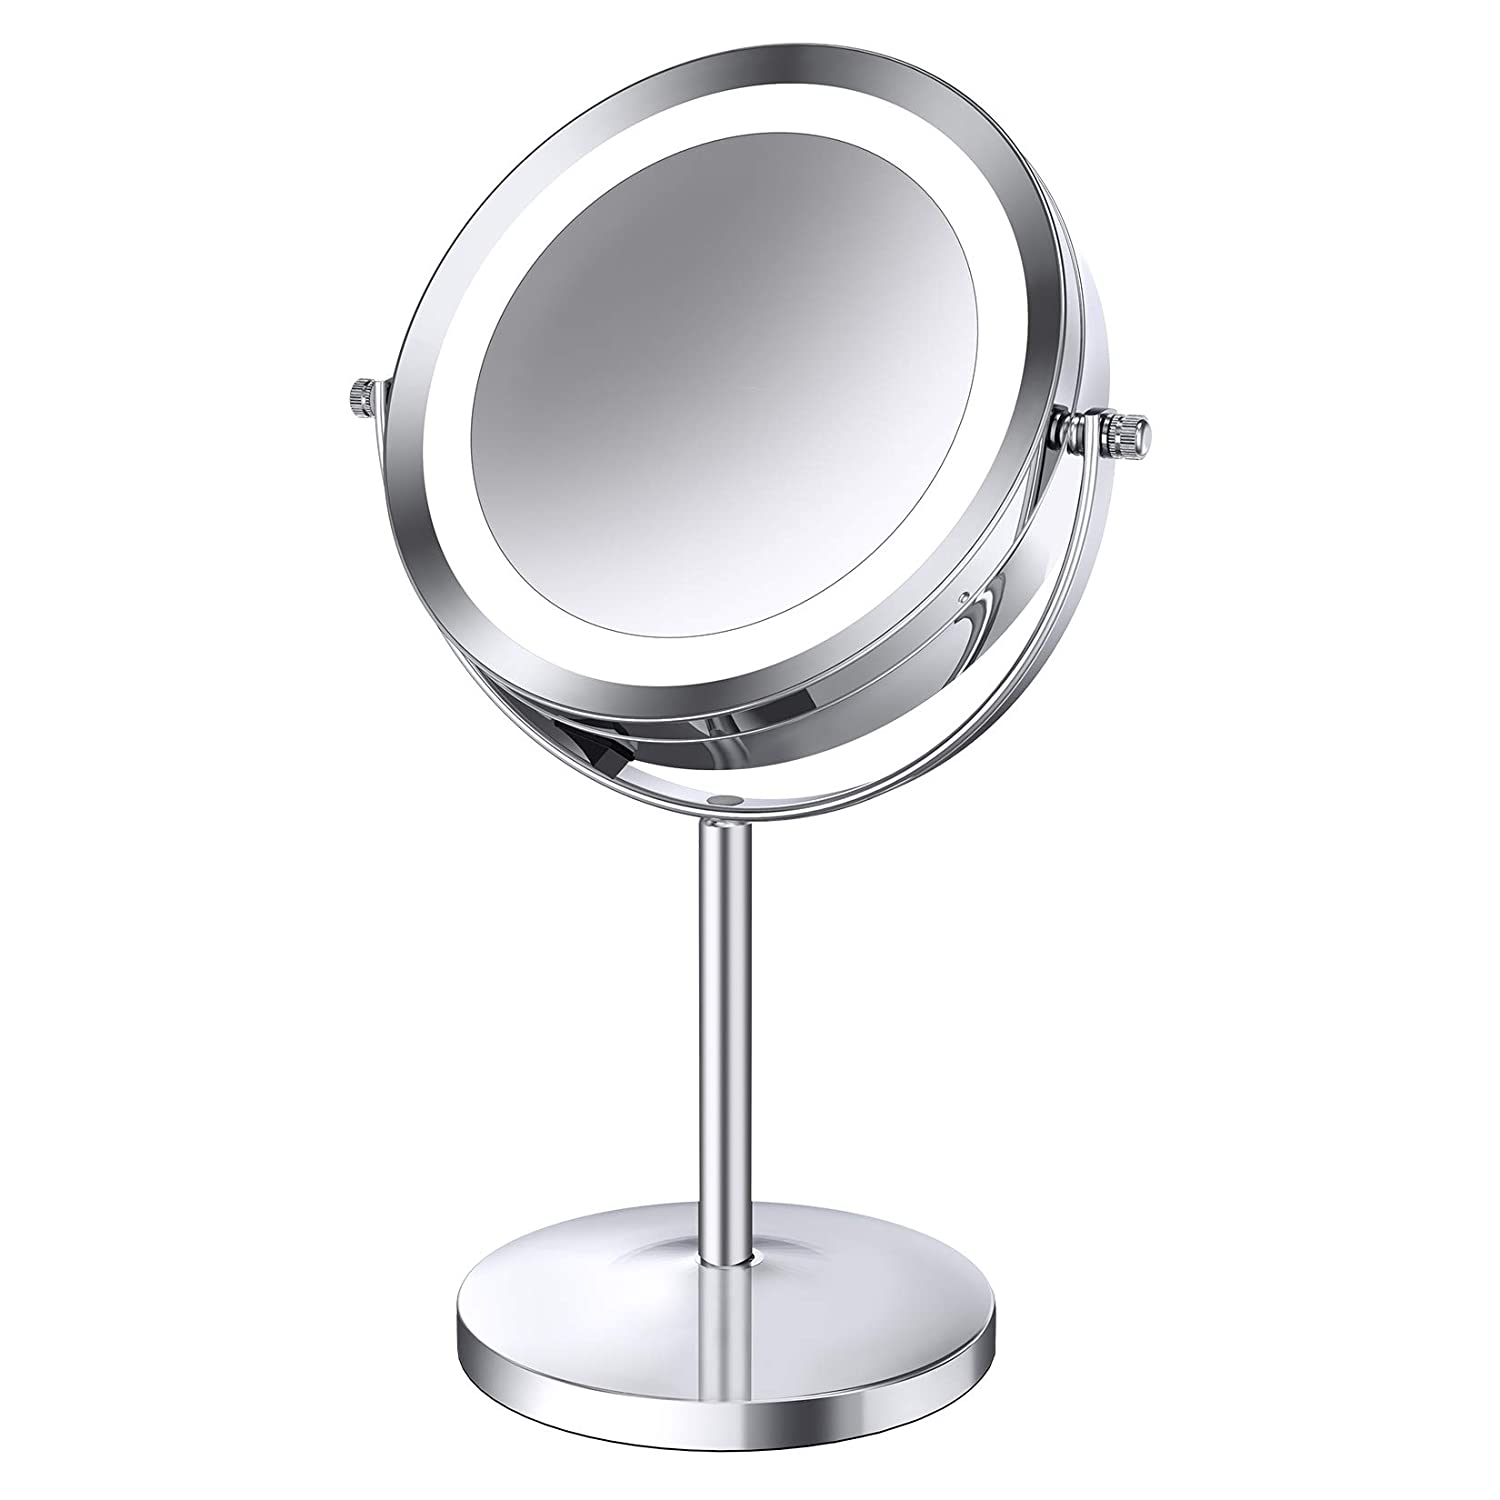 Amazon Com Benbilry Lighted Makeup Mirror Led Double Sided 1x 10x Magnification Cosmetic Mirror 7 Inch Battery Powered 360 Degree Rotation Vanity Mirror With On Off Push Button 10x Button Switch Mirror Beauty